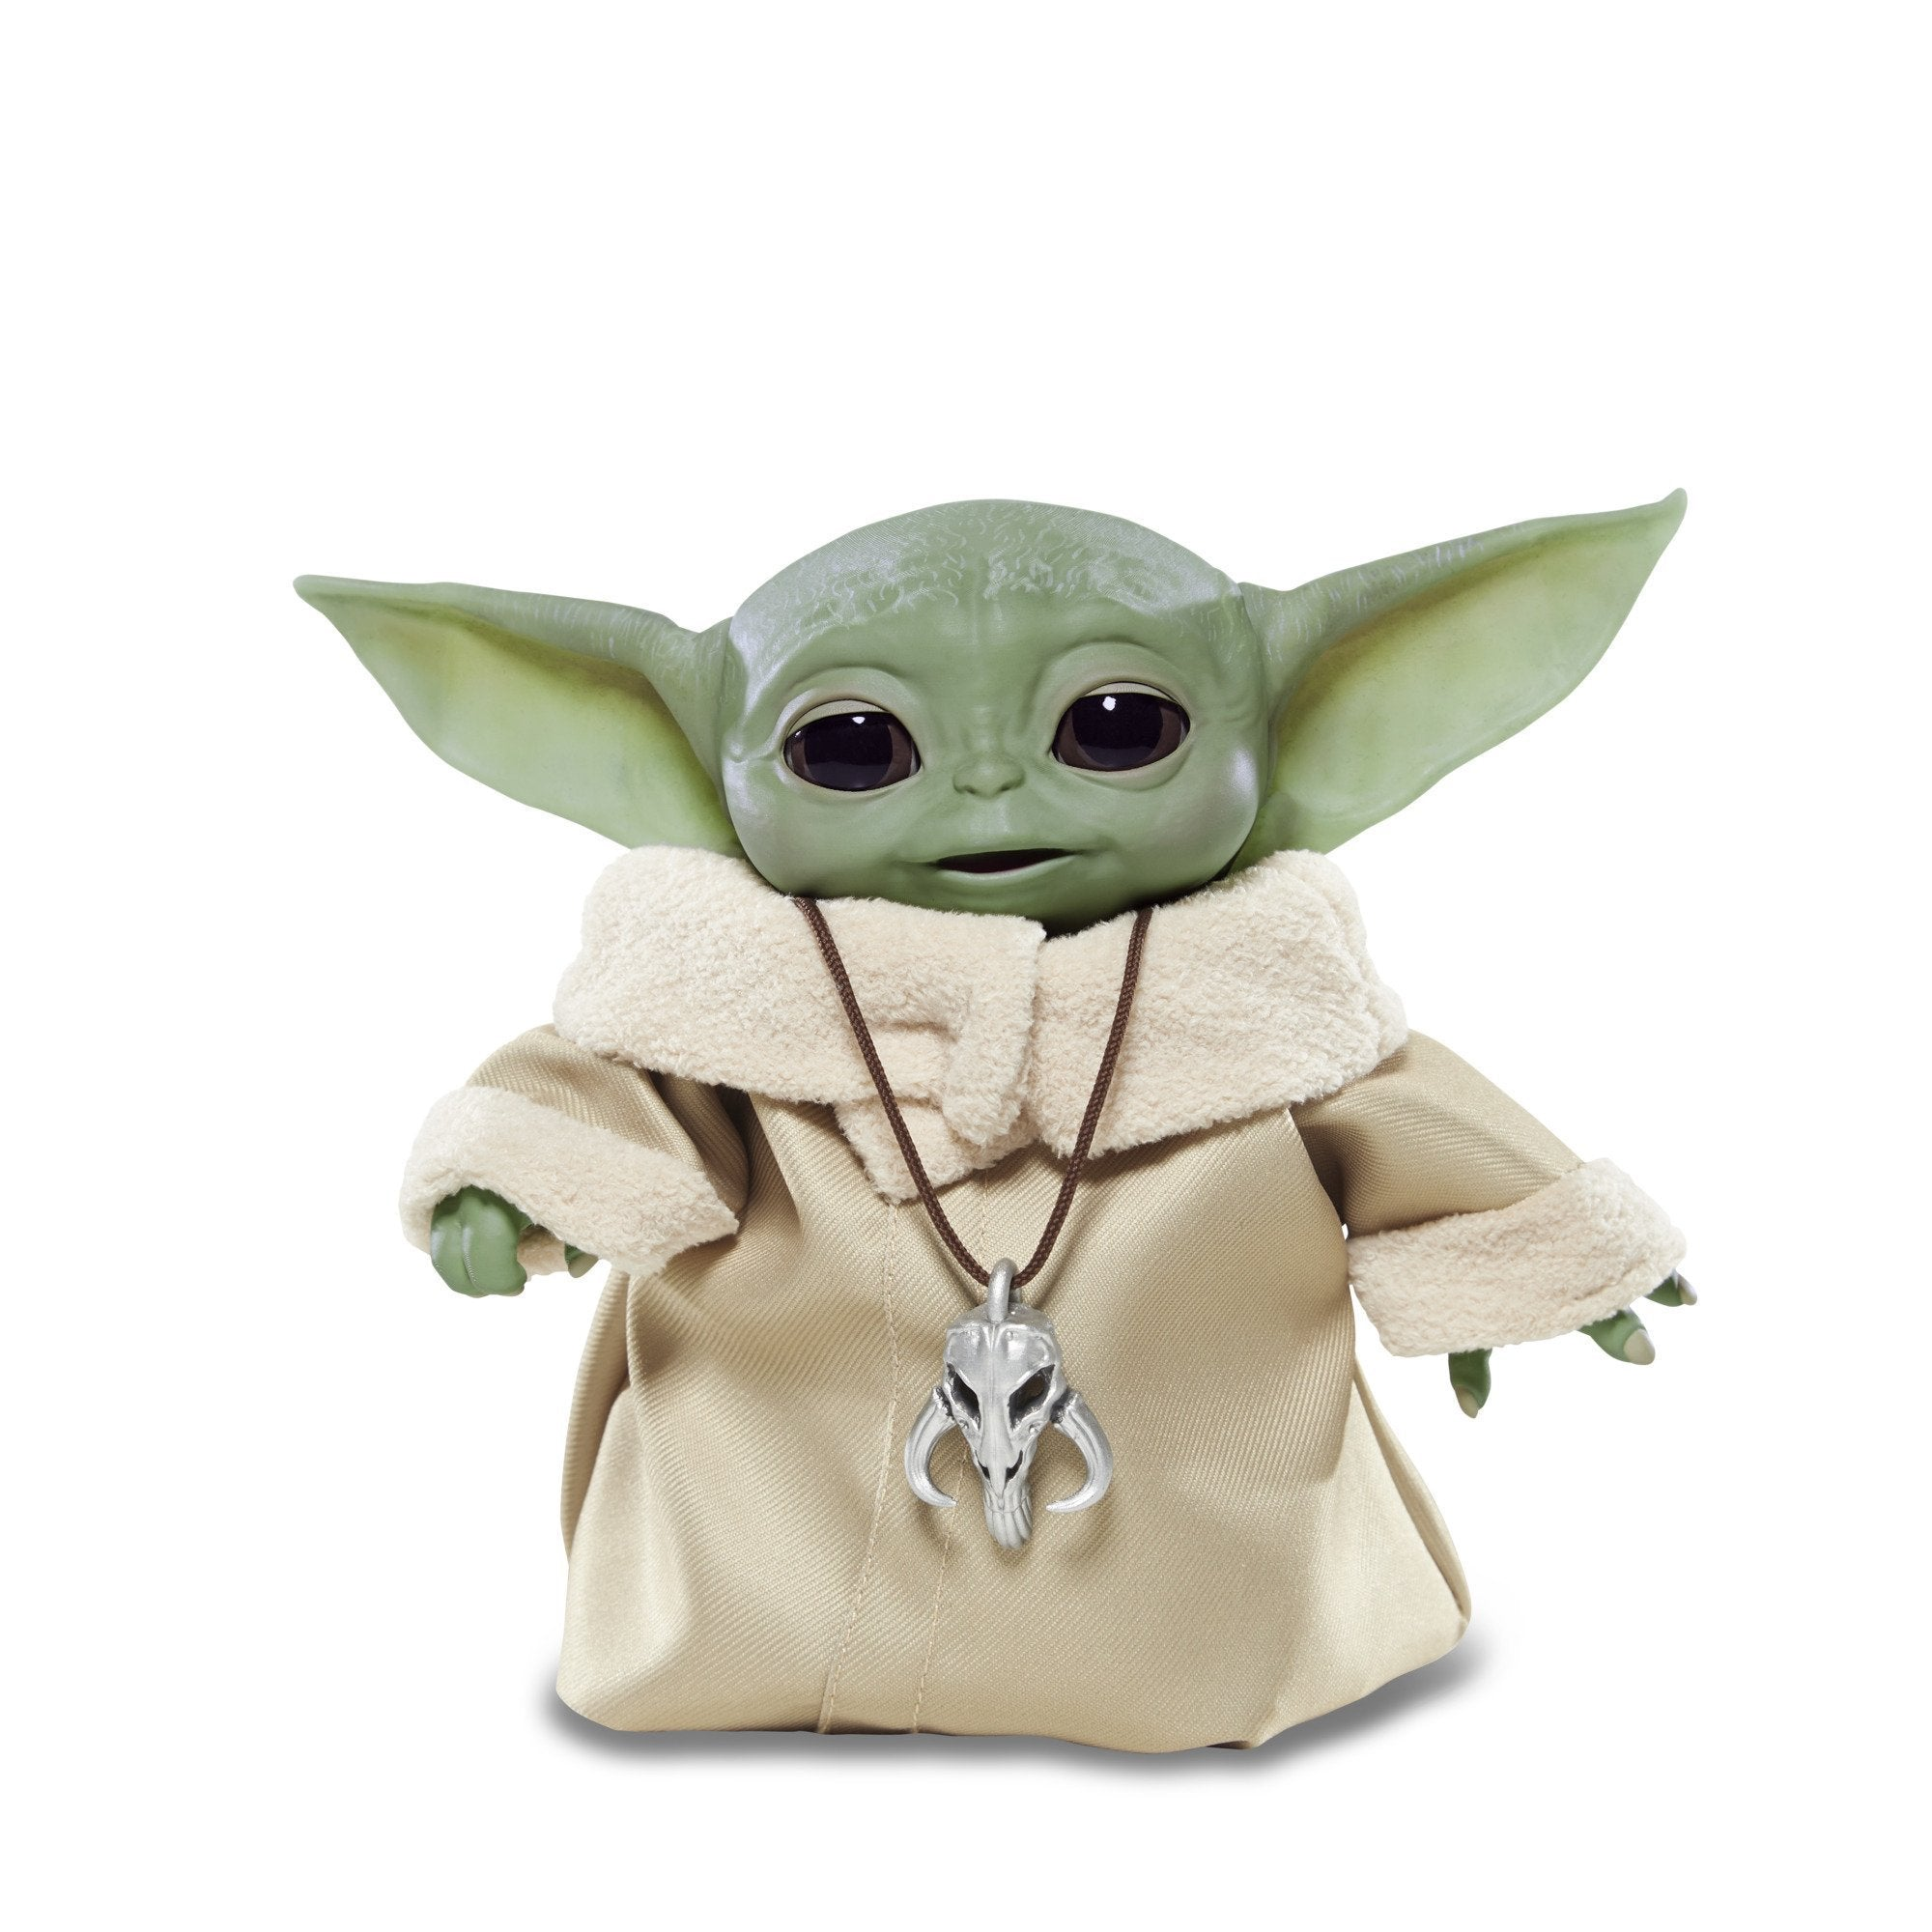 Star Wars: The Mandalorian The Child —Baby Yoda